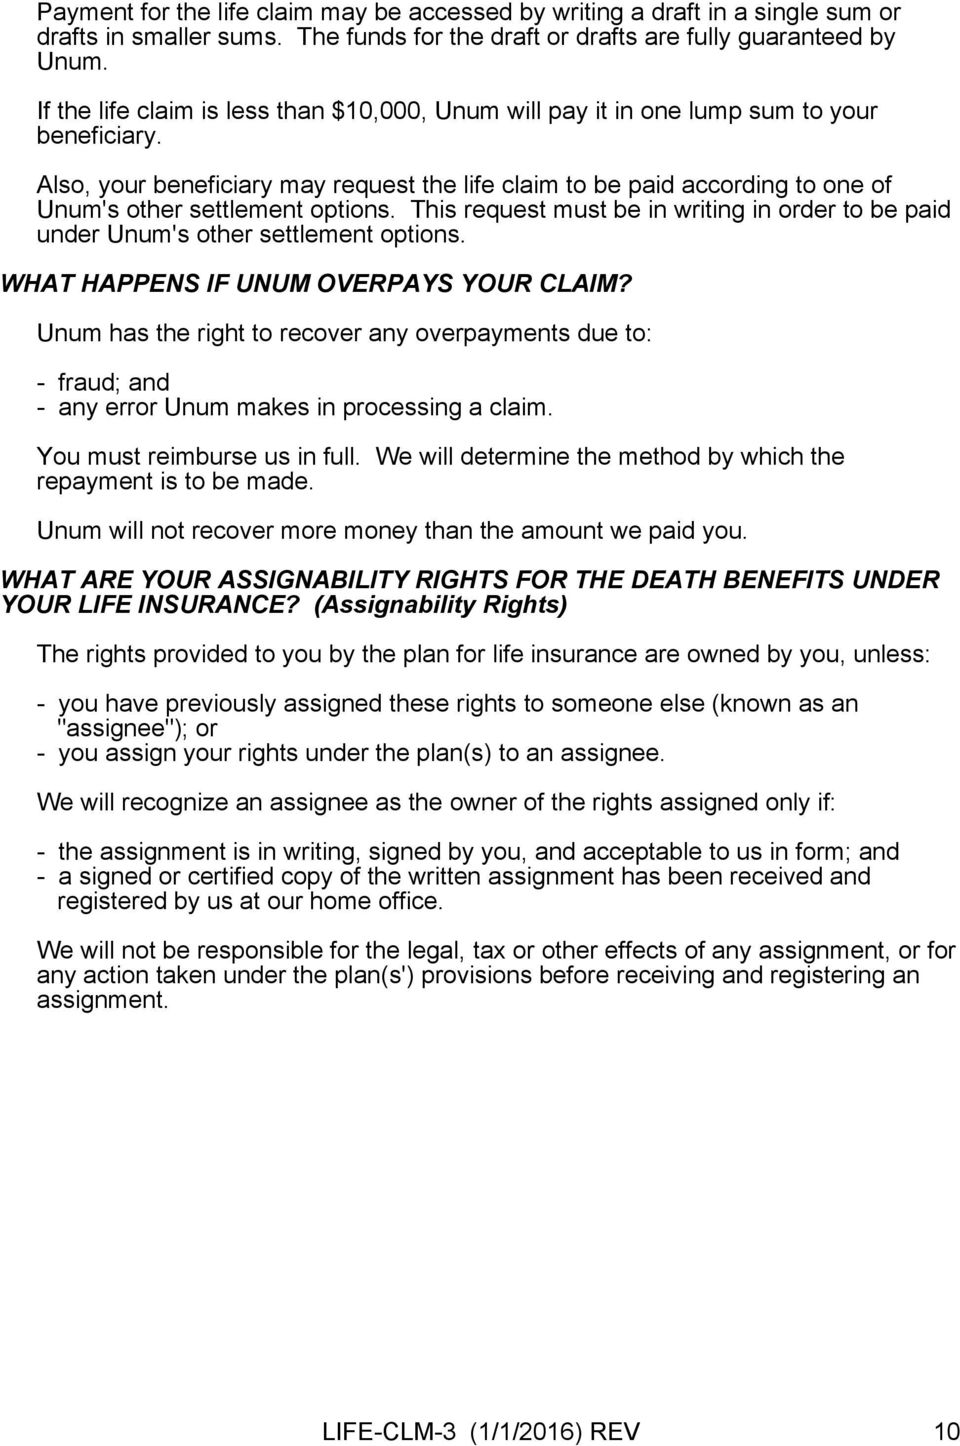 Also, your beneficiary may request the life claim to be paid according to one of Unum's other settlement options.